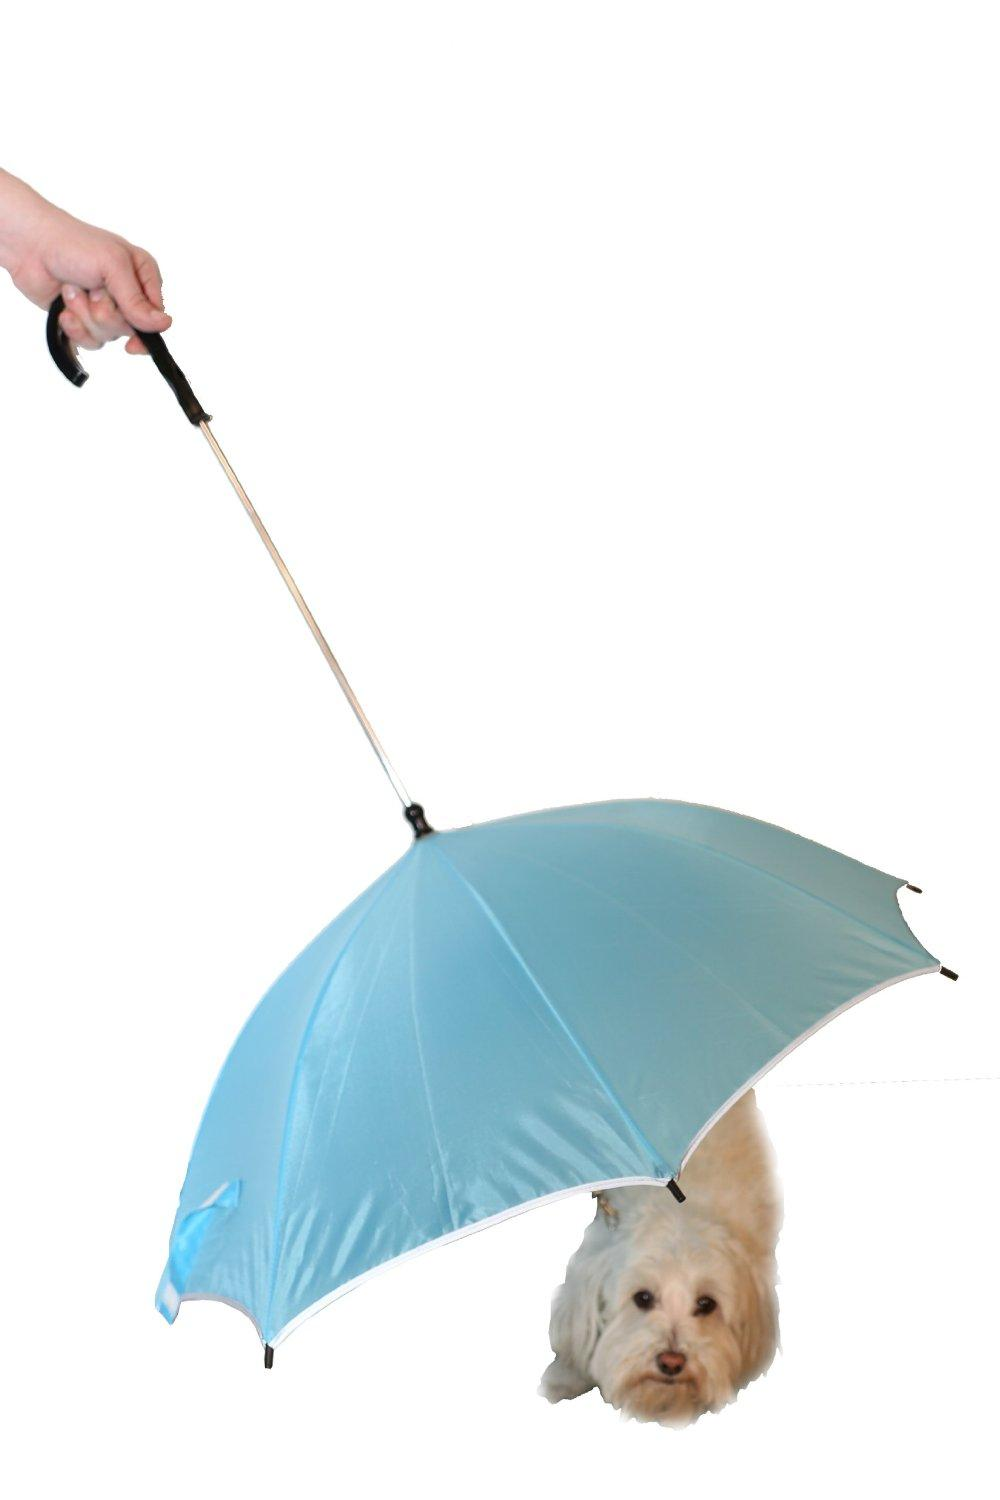 Pet Life Pour-Protection Umbrella with Reflective Lining and Leash Holder